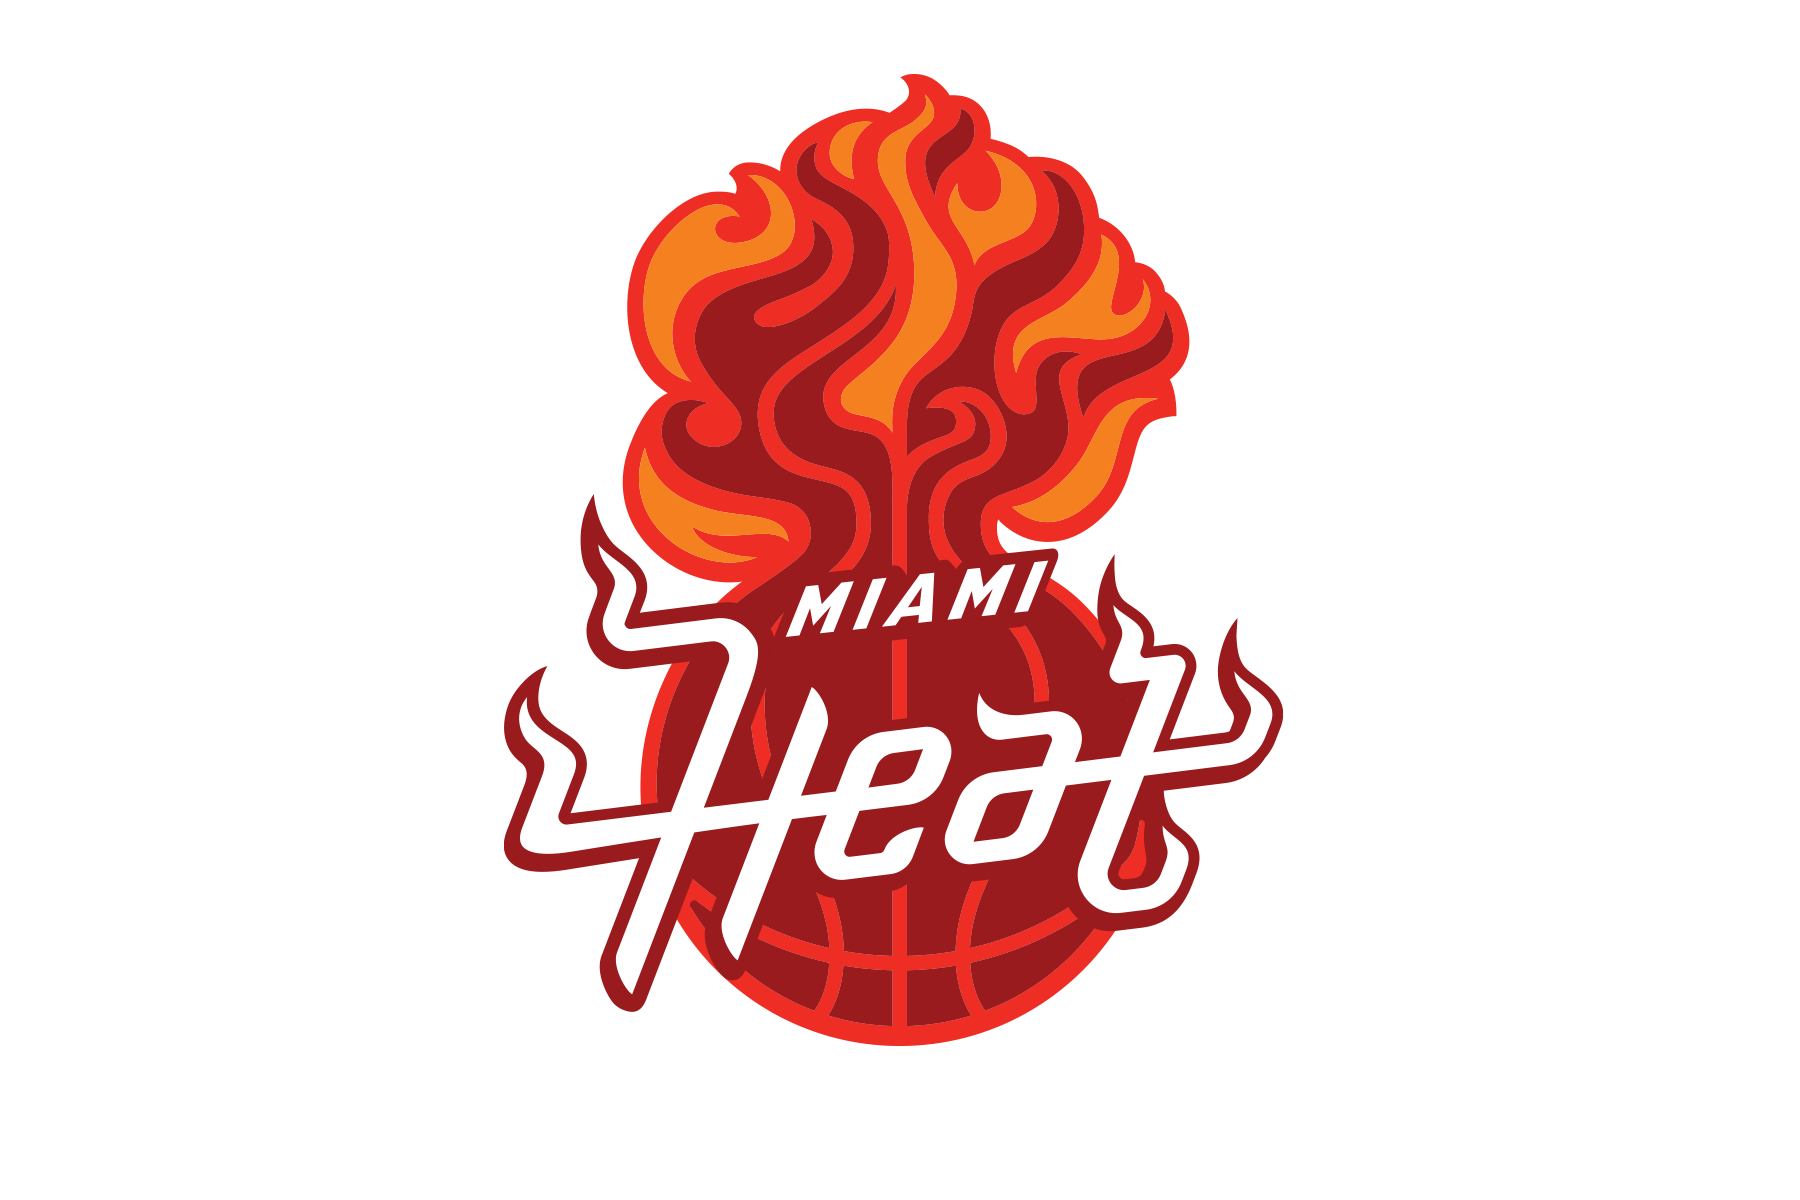 Michael Weinstein Nba Logo Redesigns Miami Heat